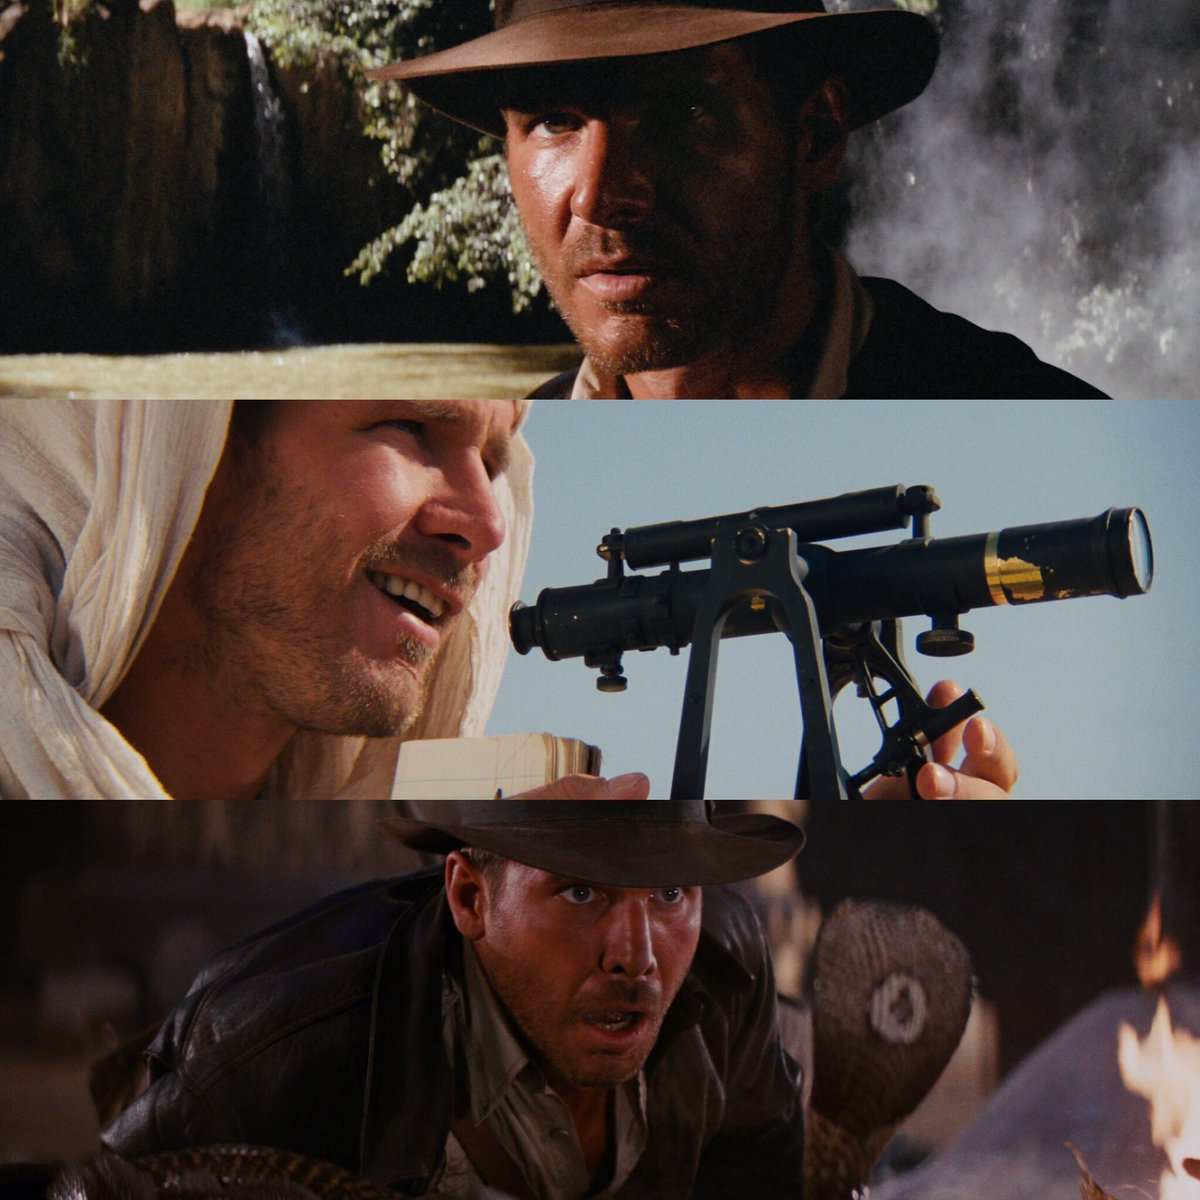 Douglas Slocombes Cinematography In SSpielbergs Raiders Of The Lost Arc Just 12 Perfect Shots From An Entirely Perfectly Shot Filmpictwitter